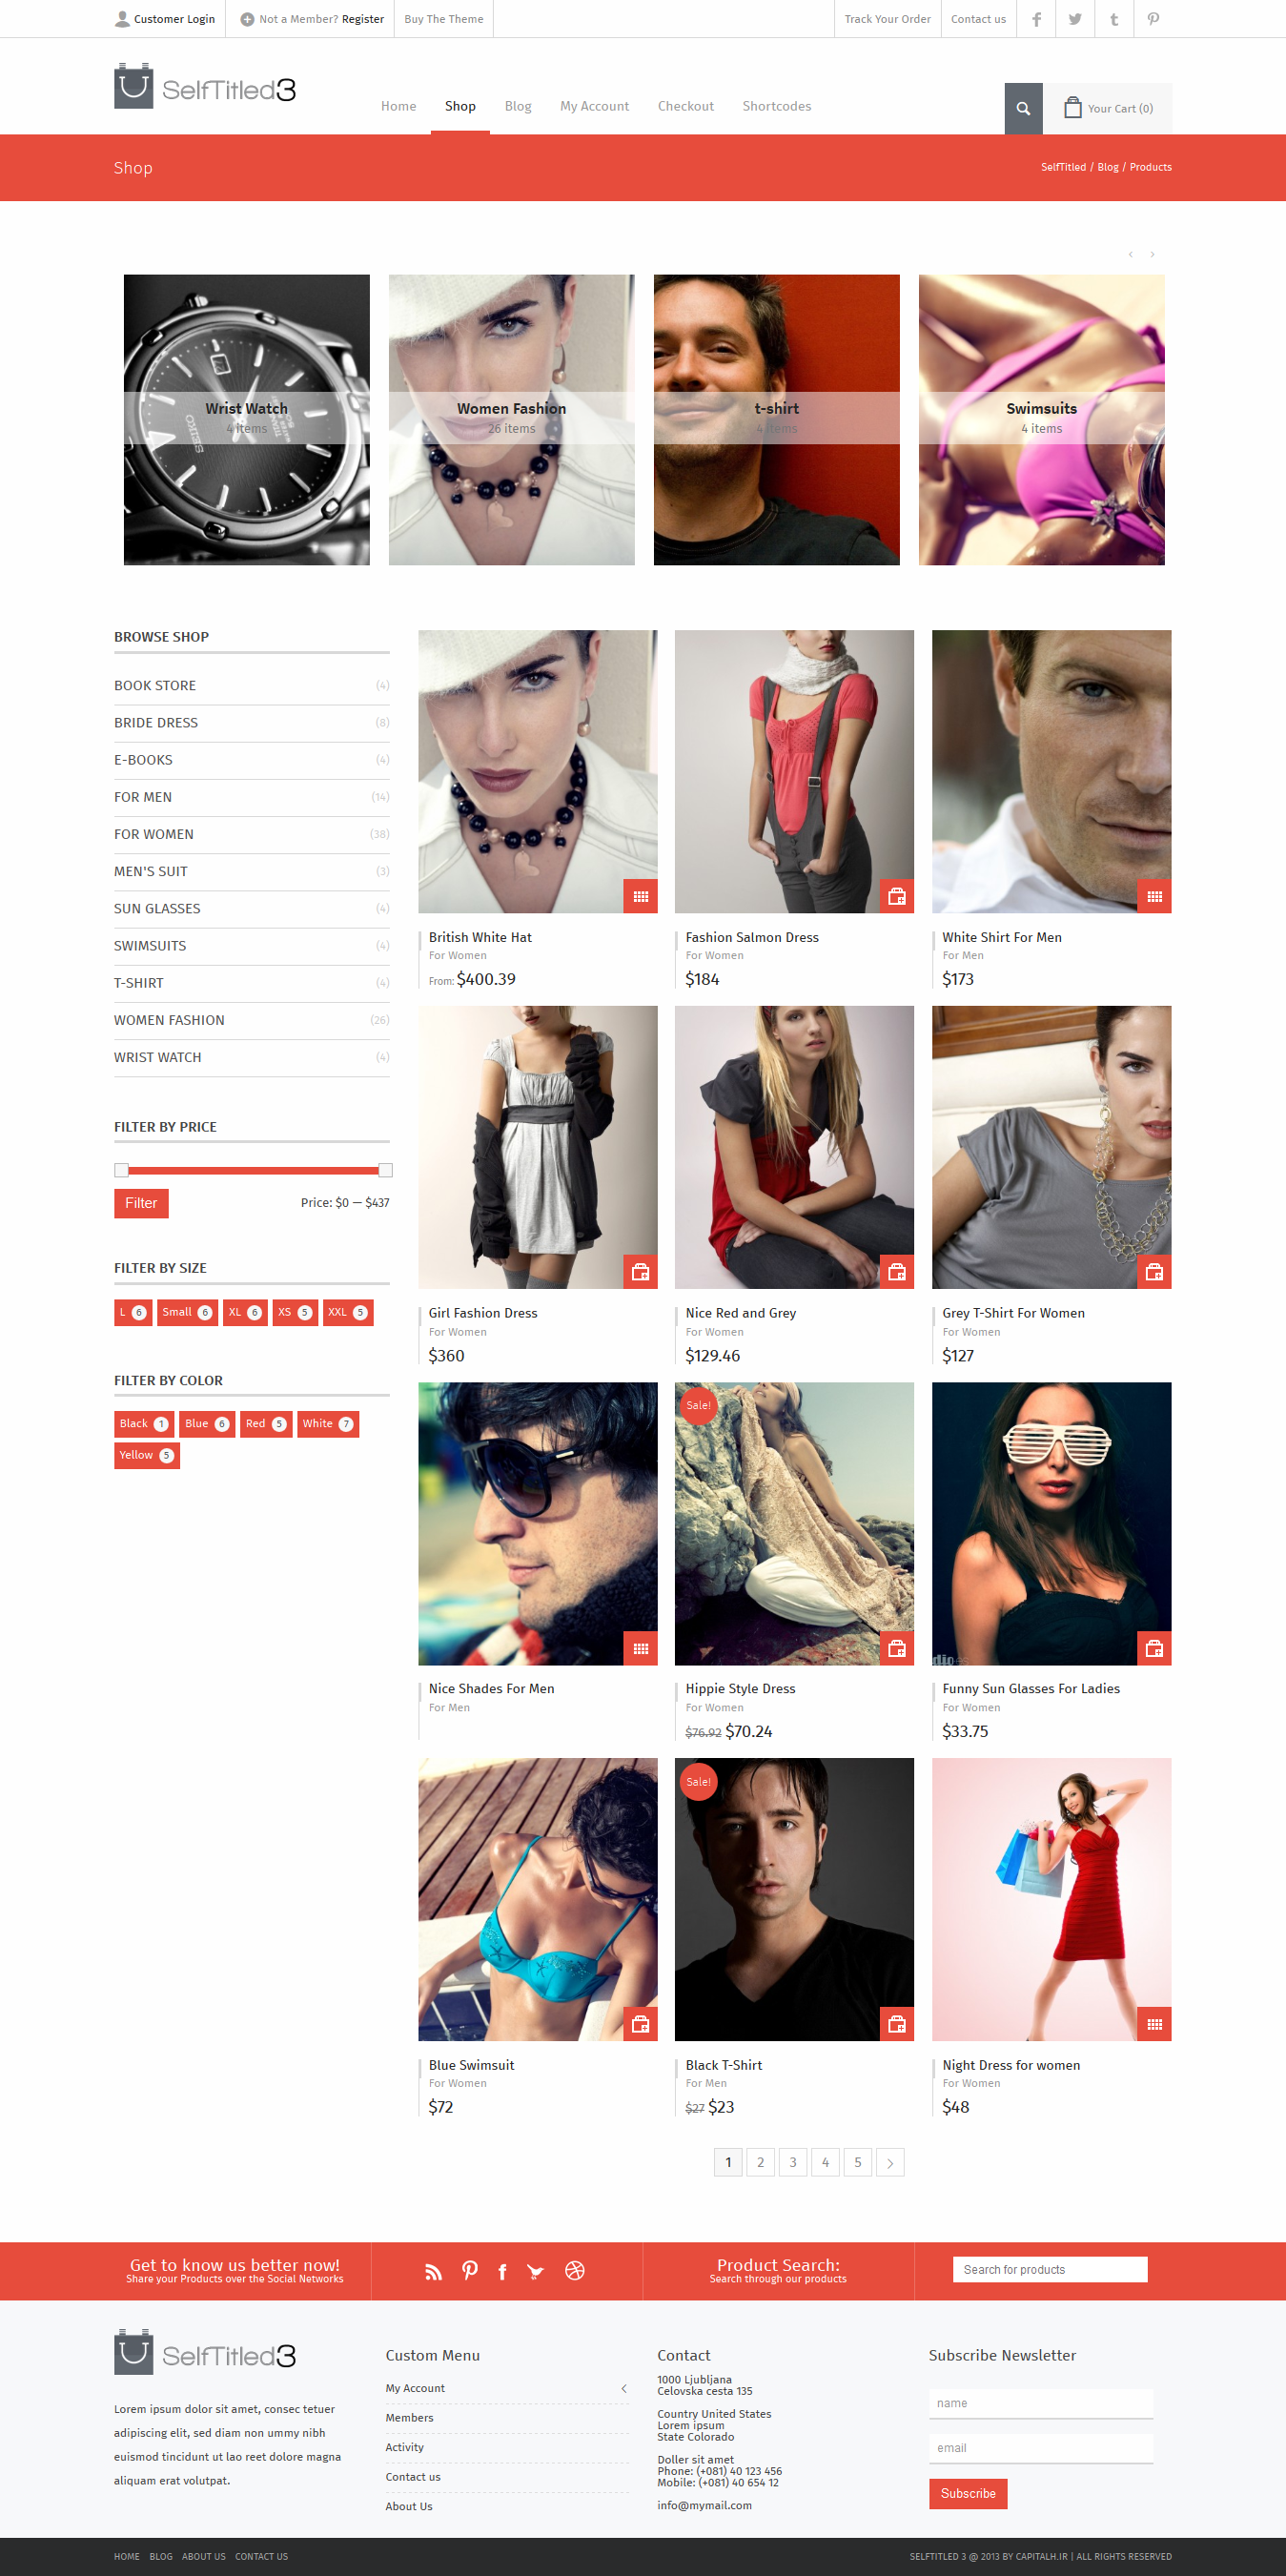 SelfTitled__Drag&Drop Widget Based WordPress Theme